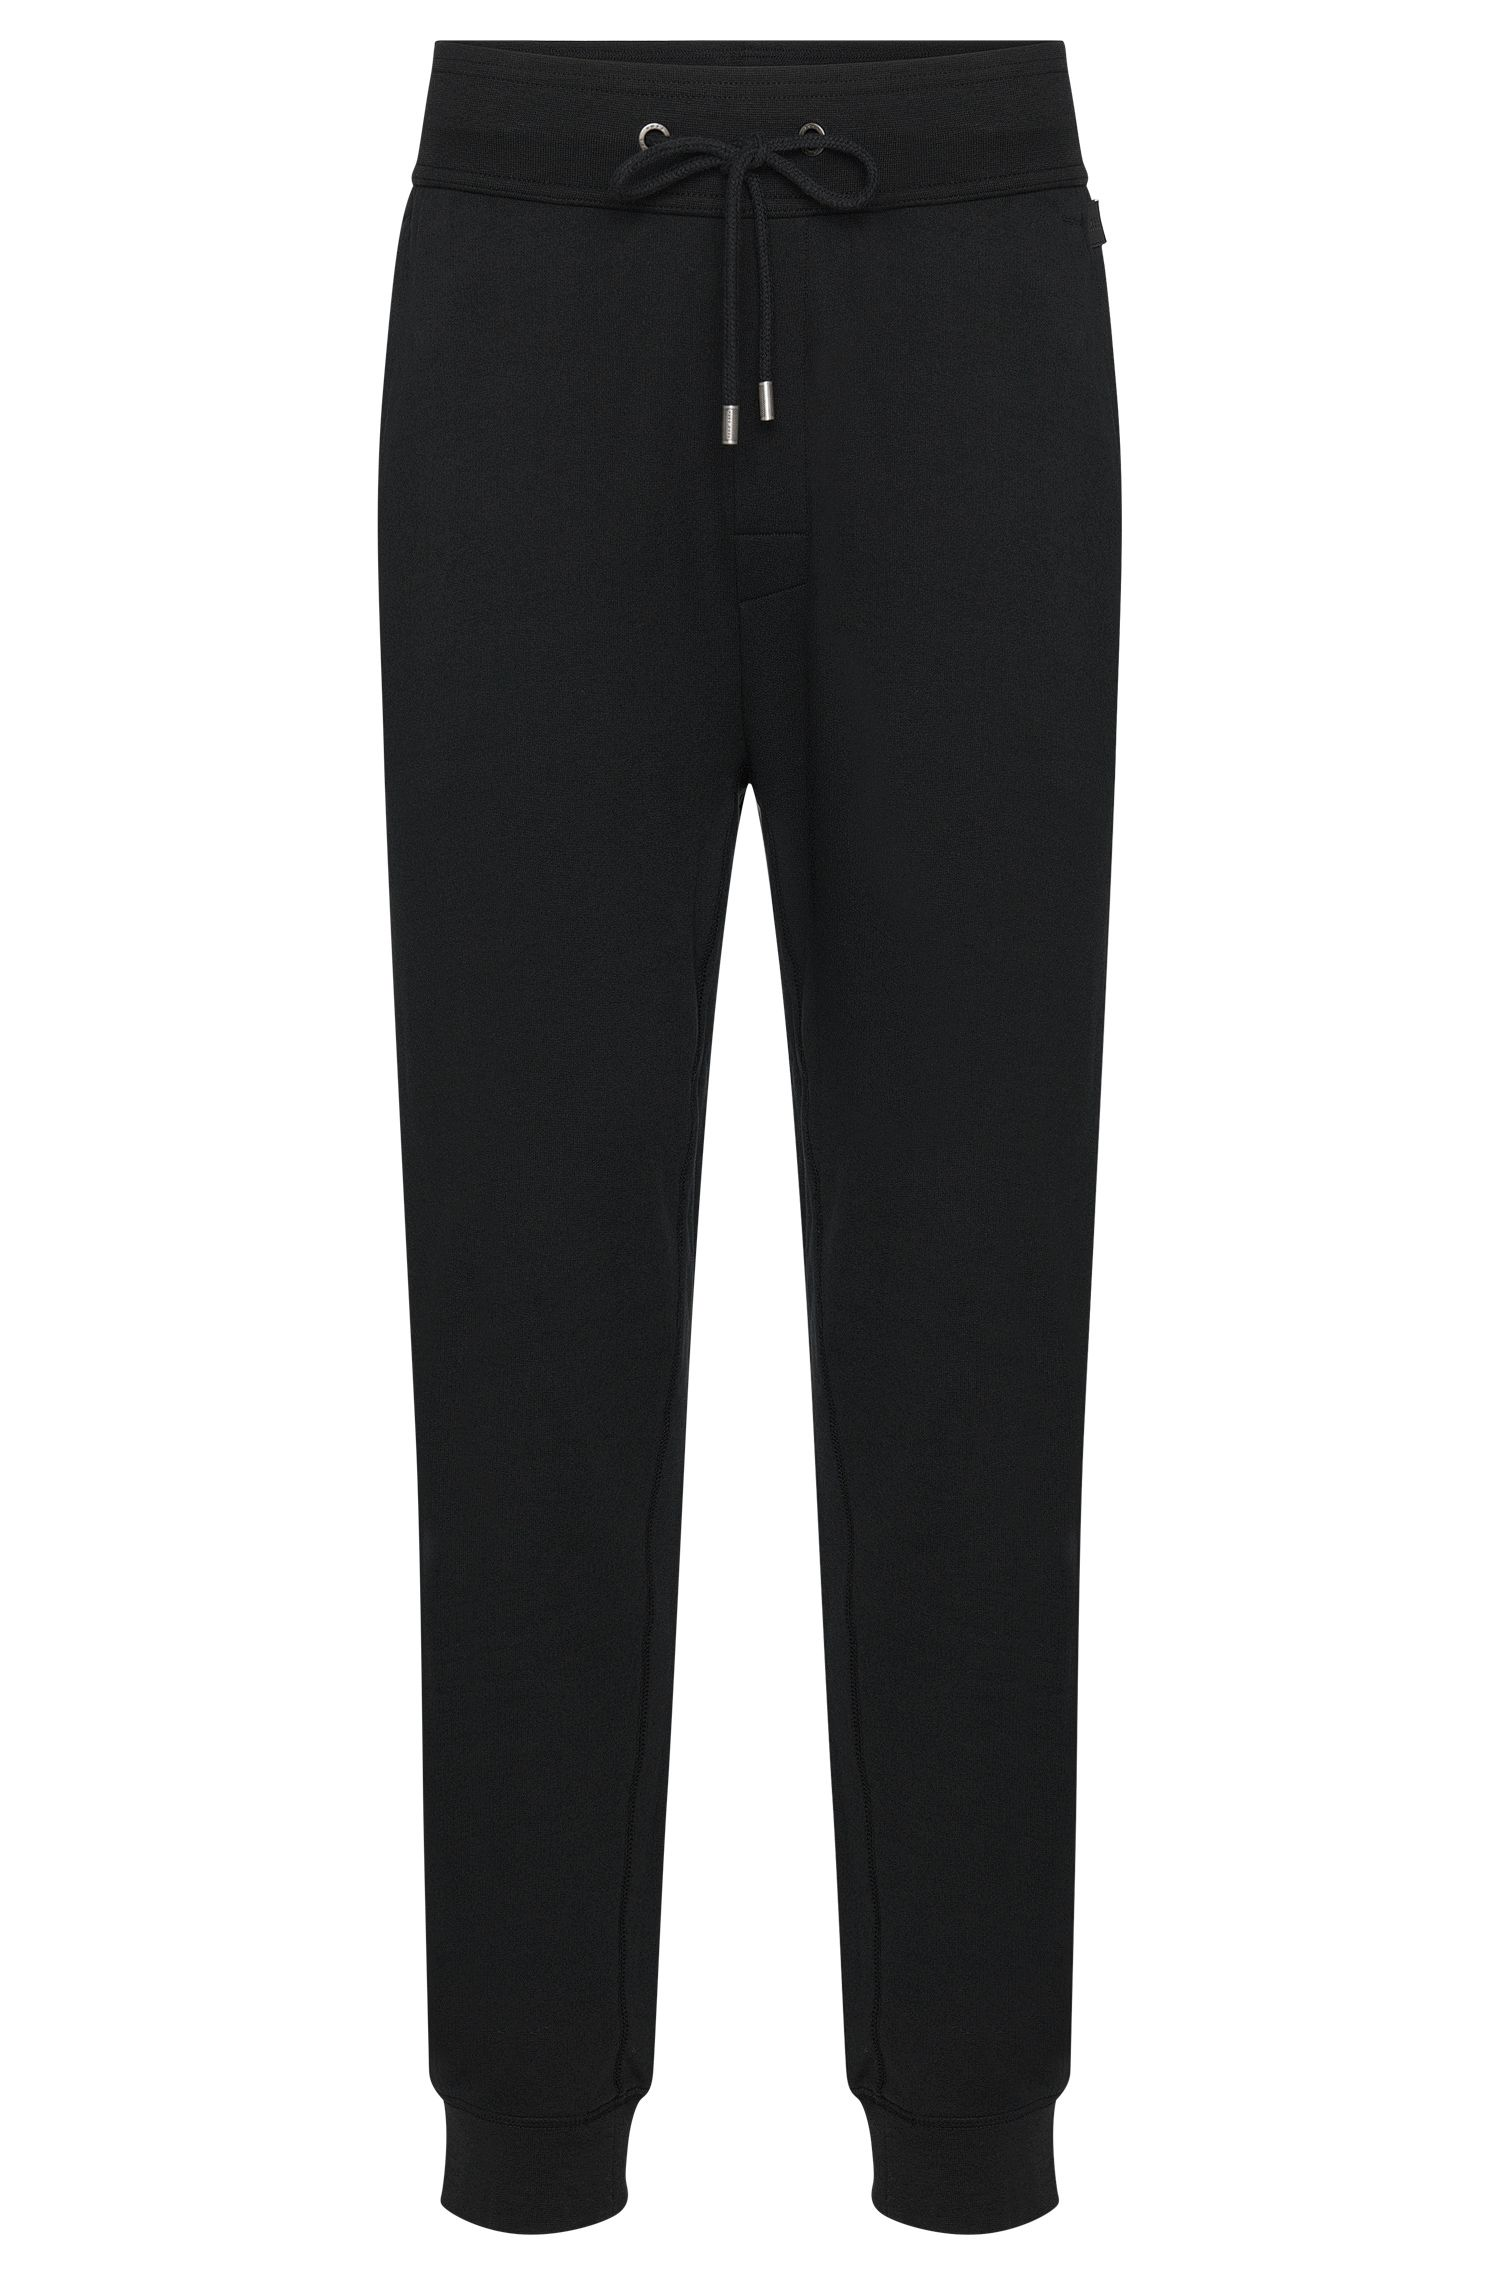 Pantalon sweat uni en coton : « Long Pant Cuffs »